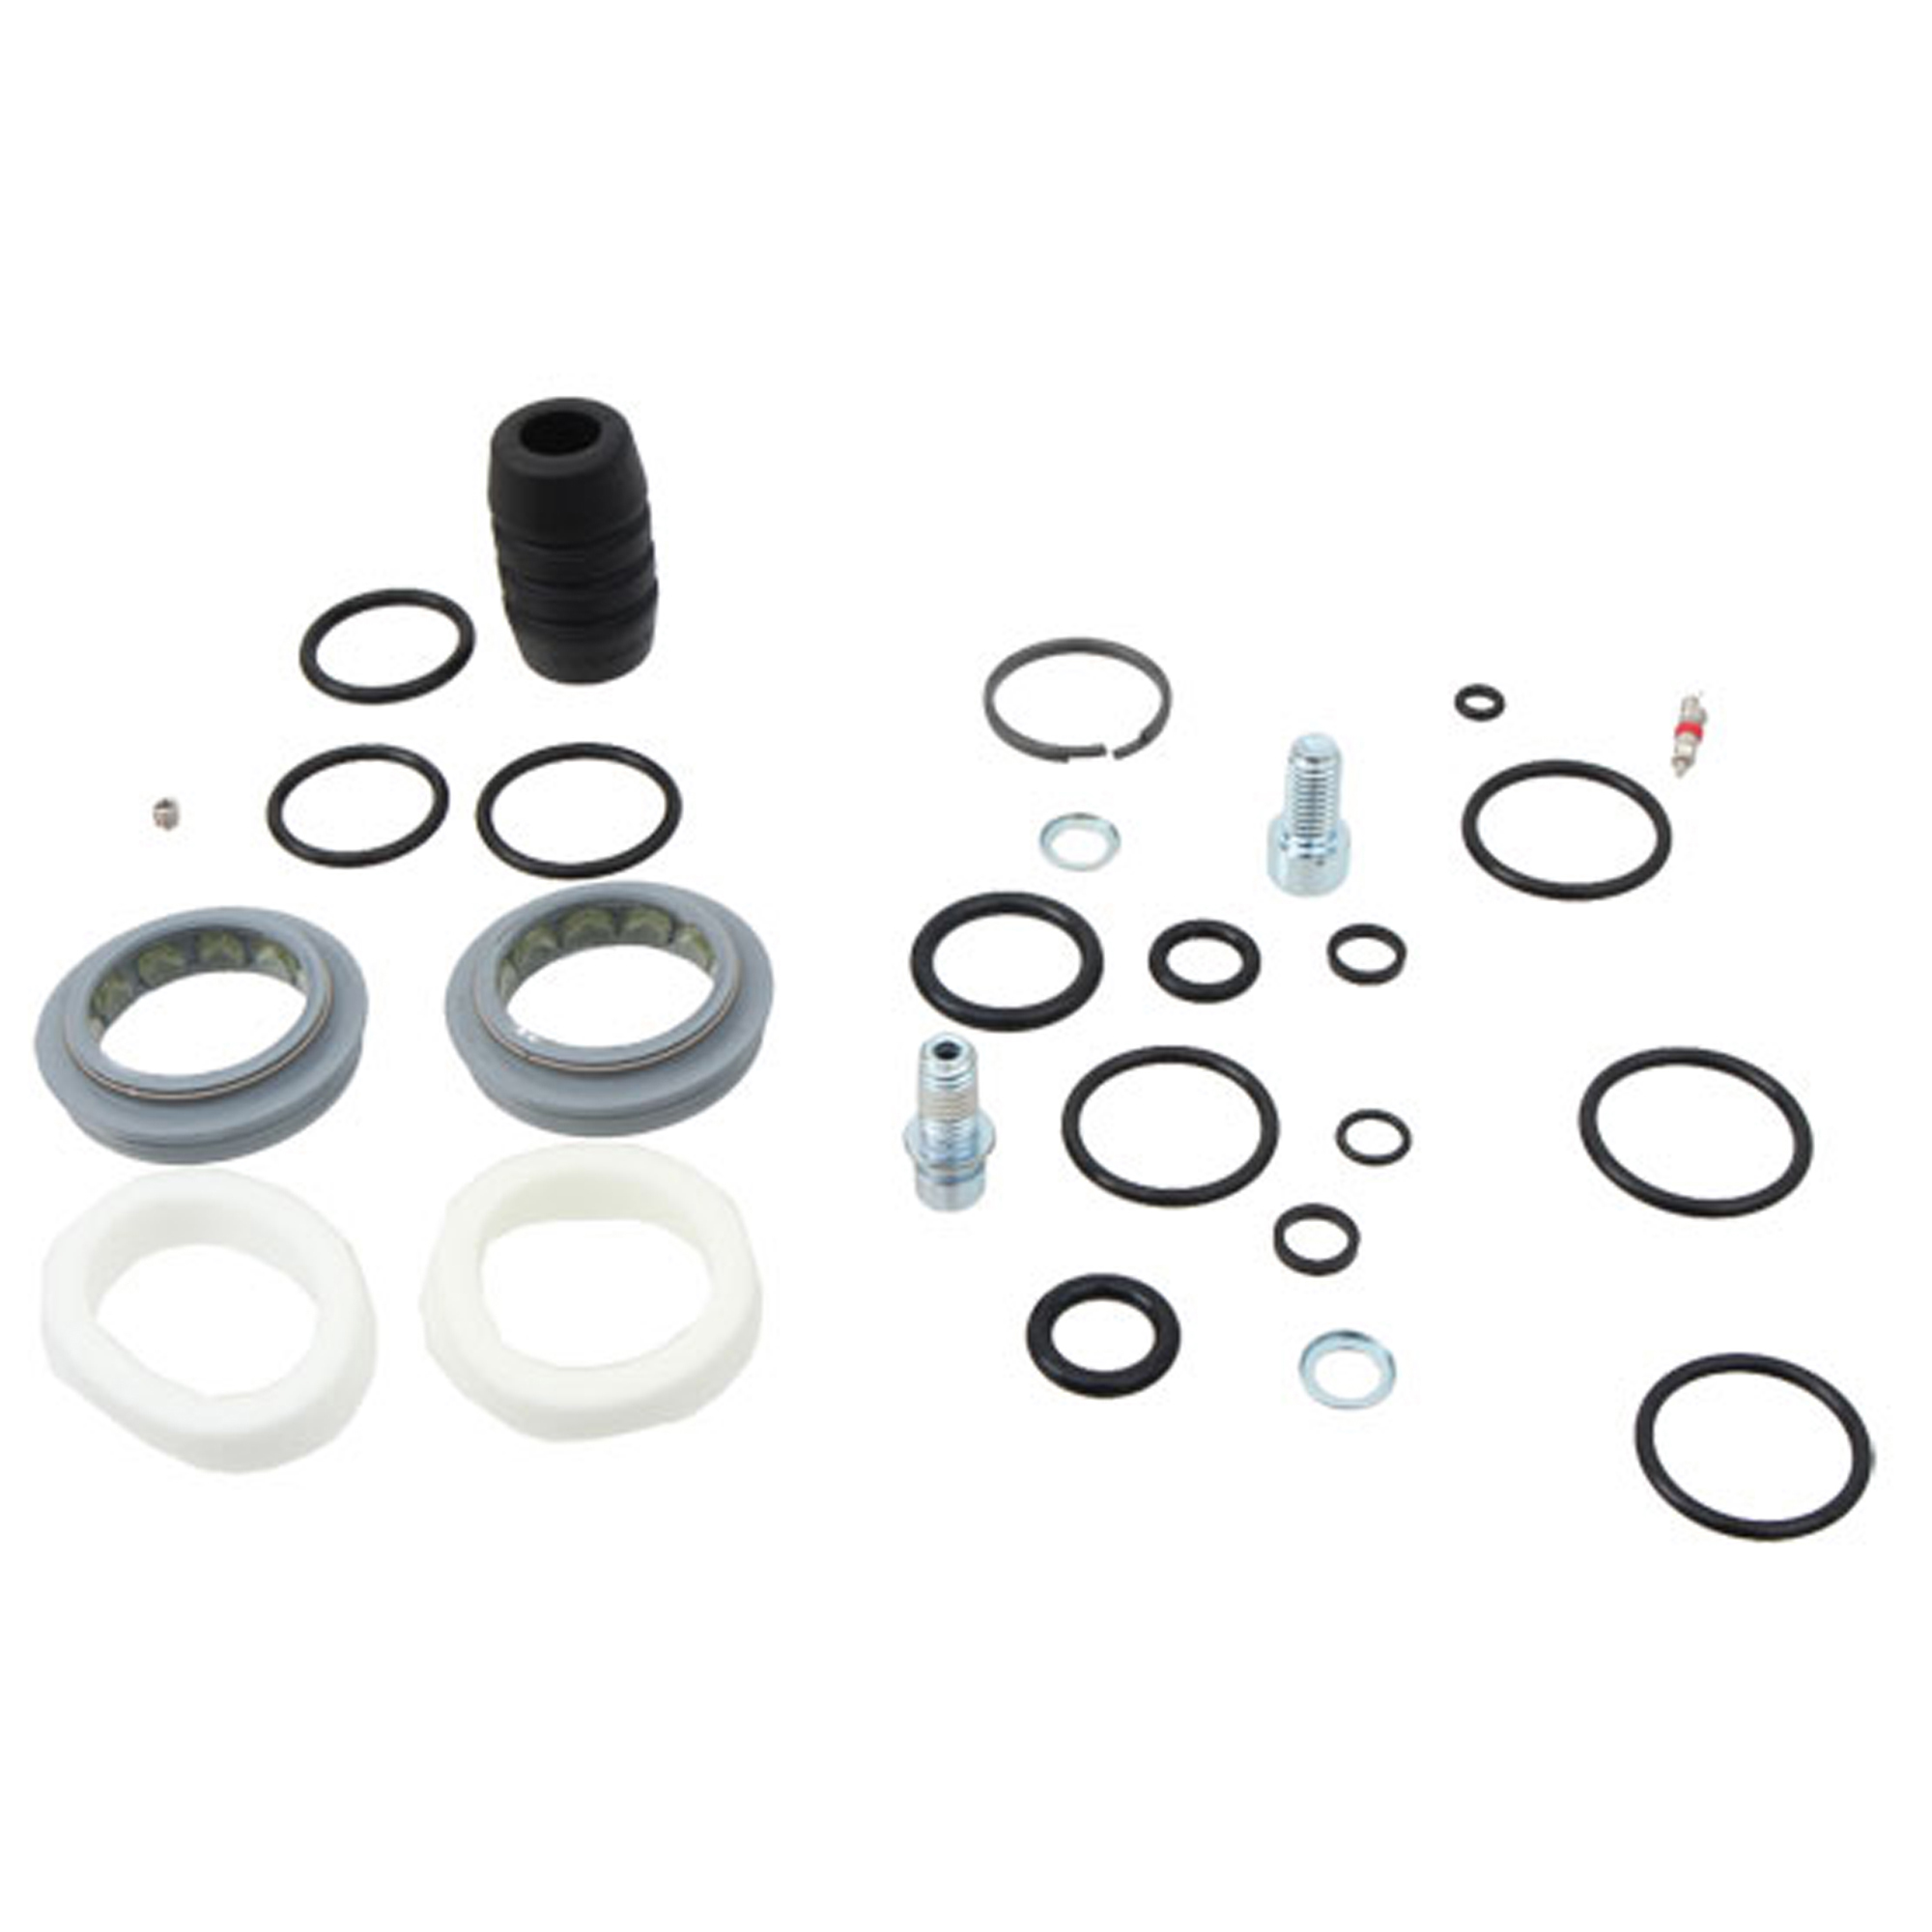 RockShox 11.4018.016.000 Service kit Recon Gold Solo Air 2013+